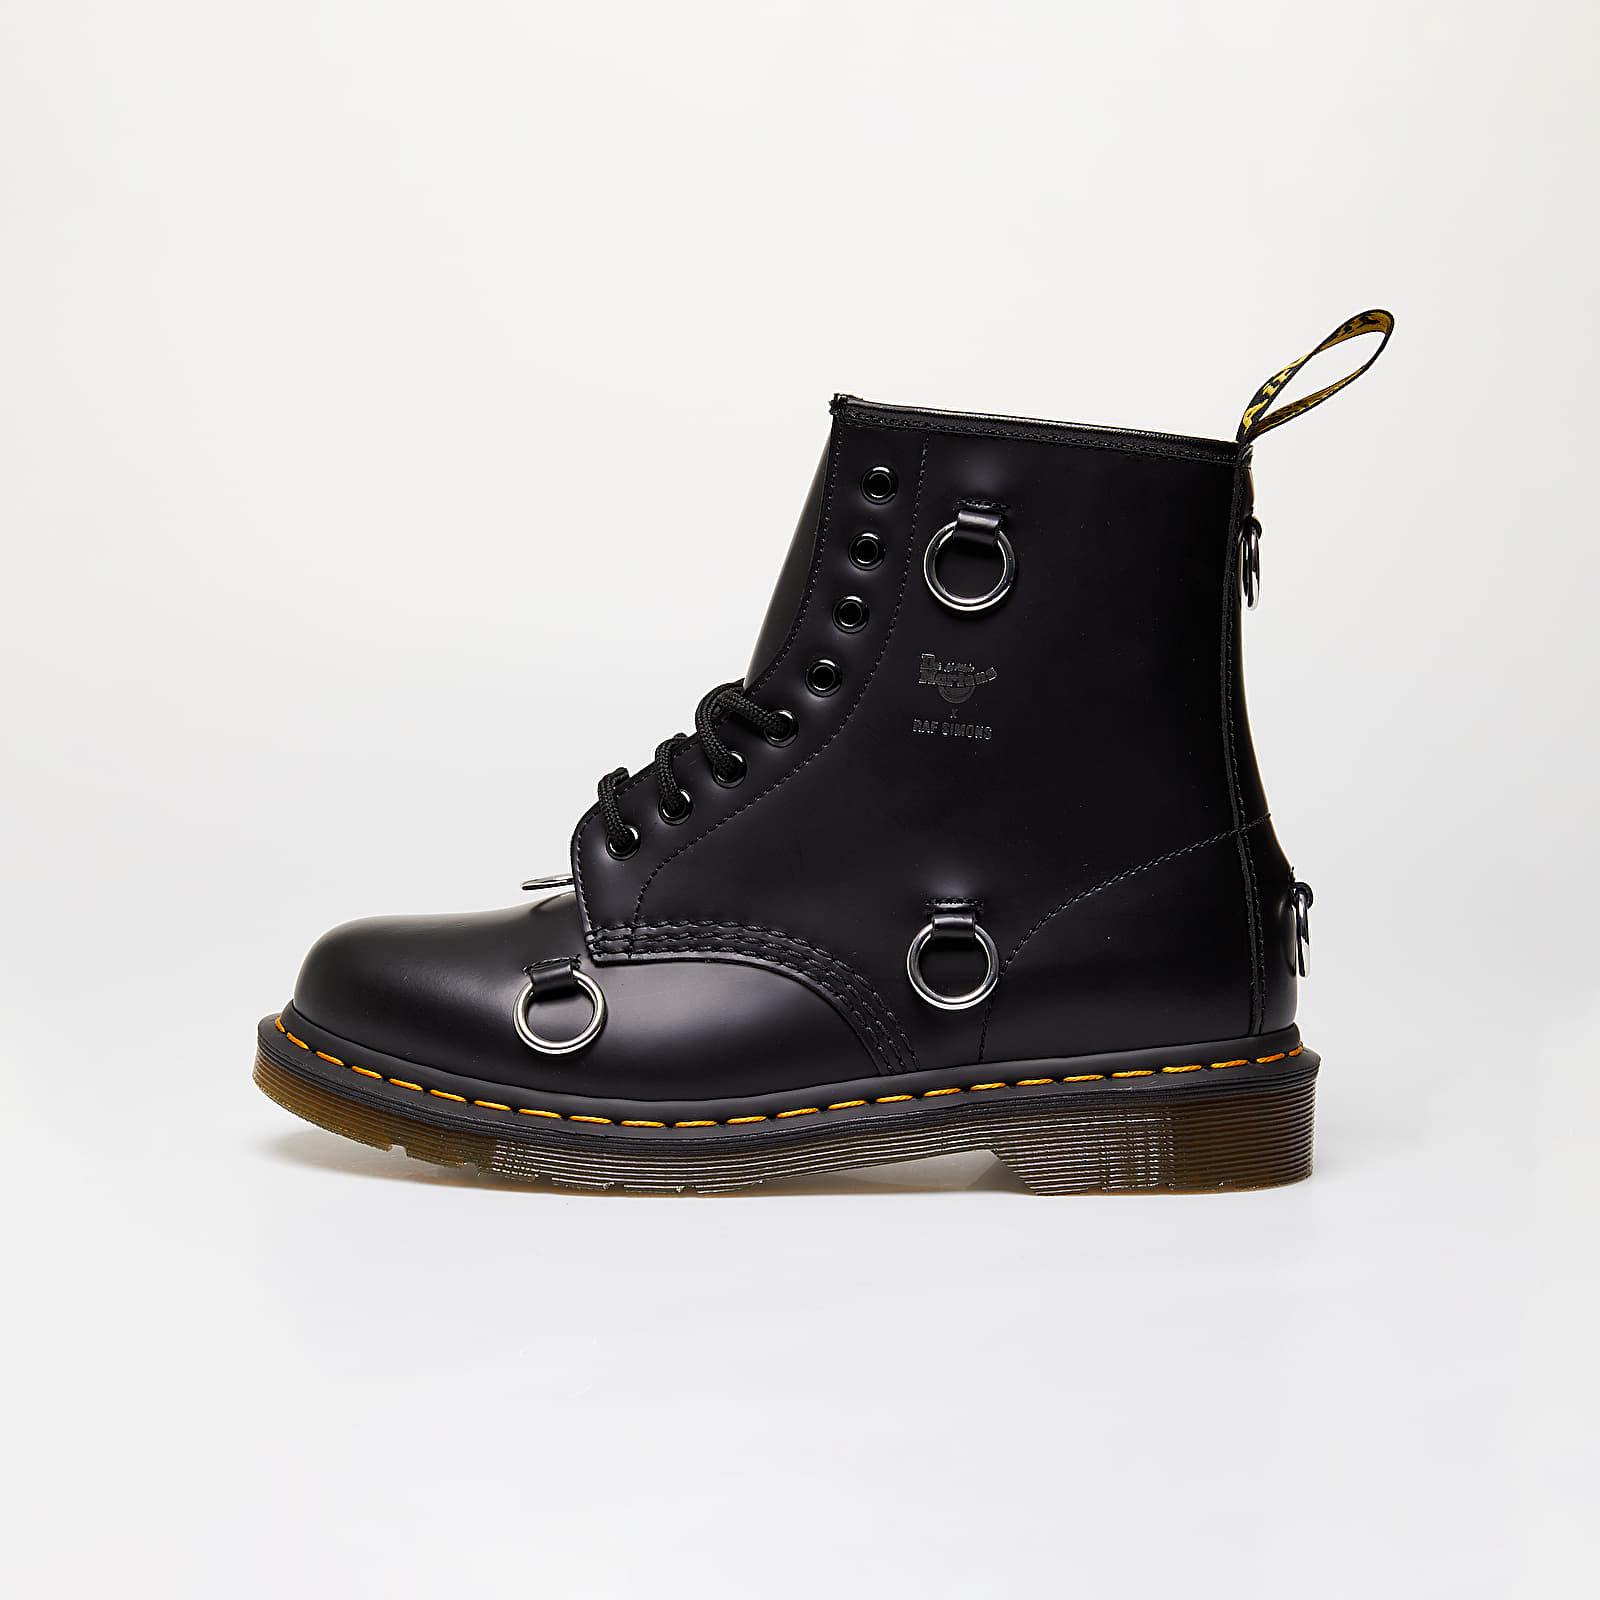 Dr.Martens x Raf Simons High Ring